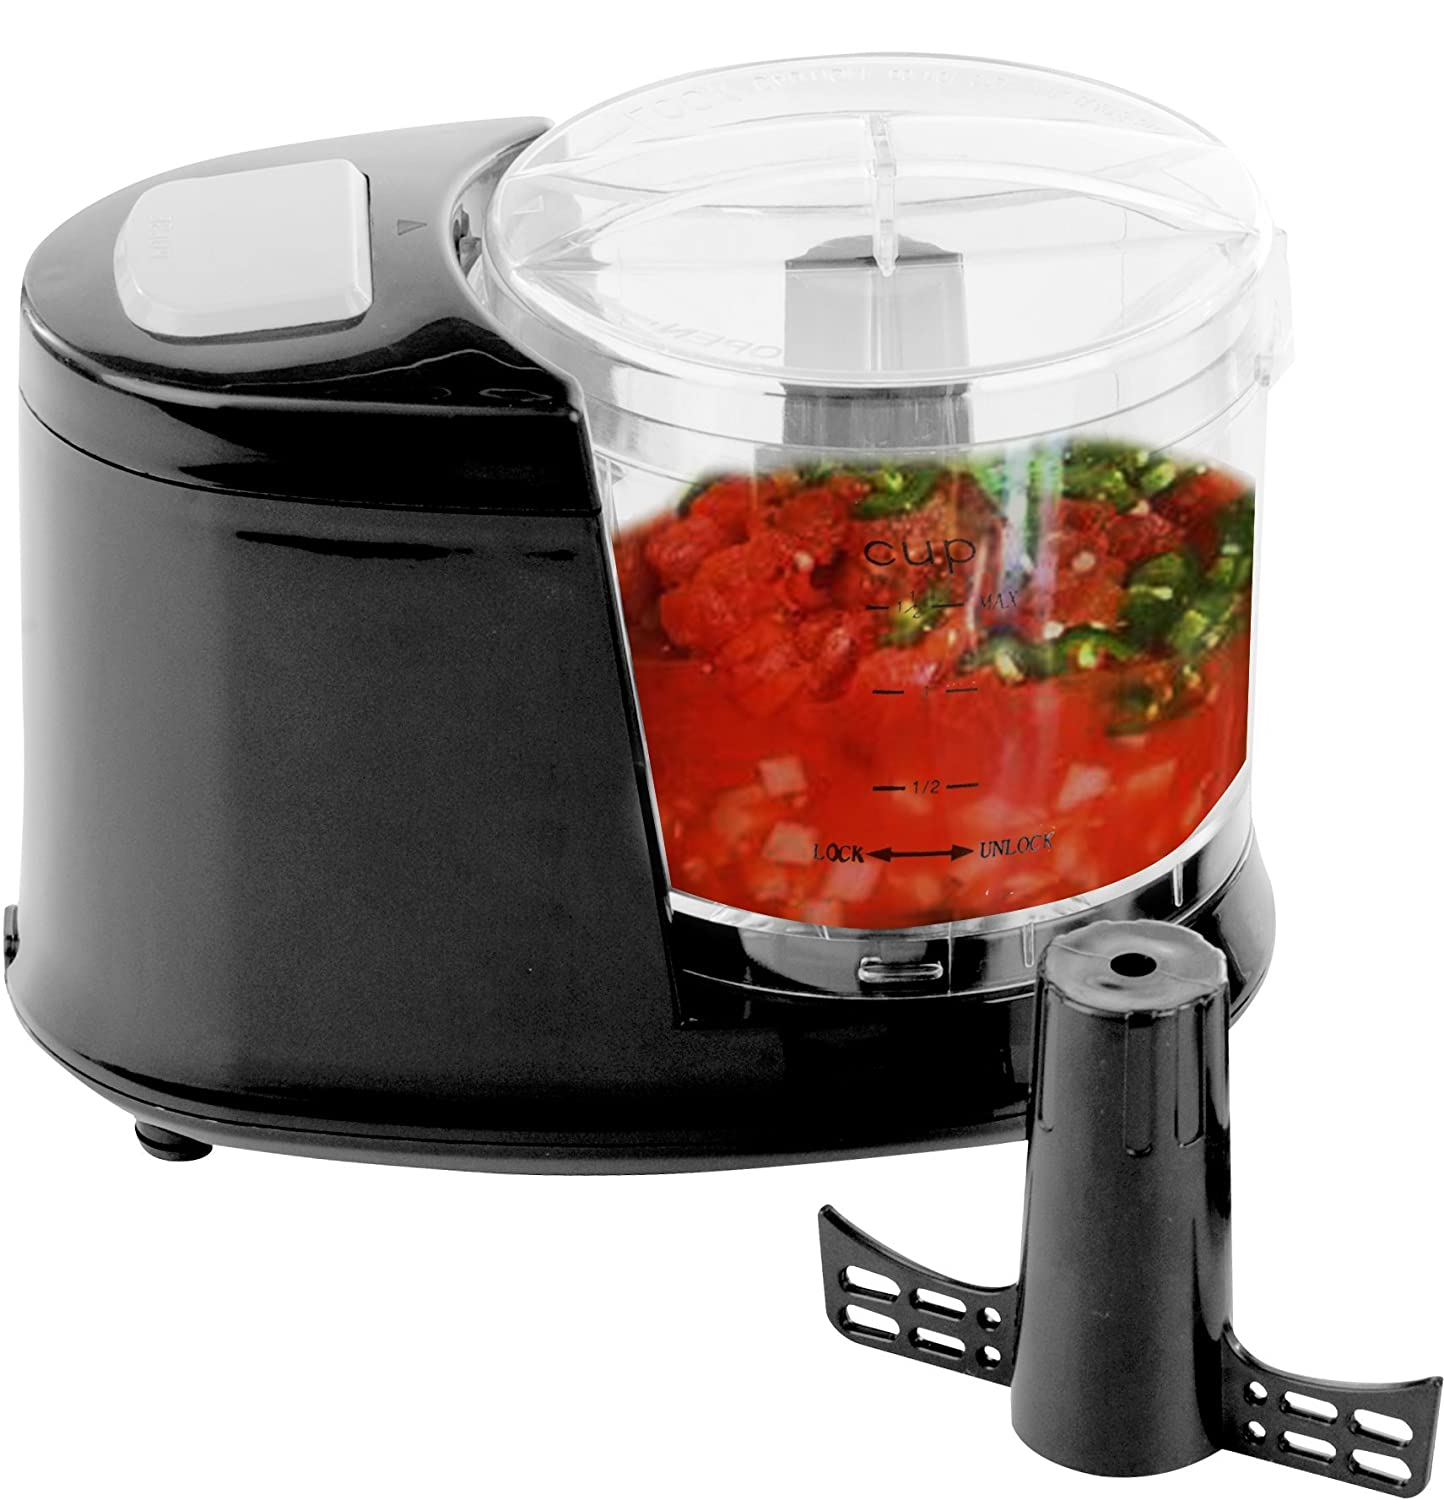 OVENTE PF1006B Mini Food Processor 100-Watts, with One Touch Pulse Control, Chopping Blade, Shredding Disc and Mixer, Black, 1.5L Bowl